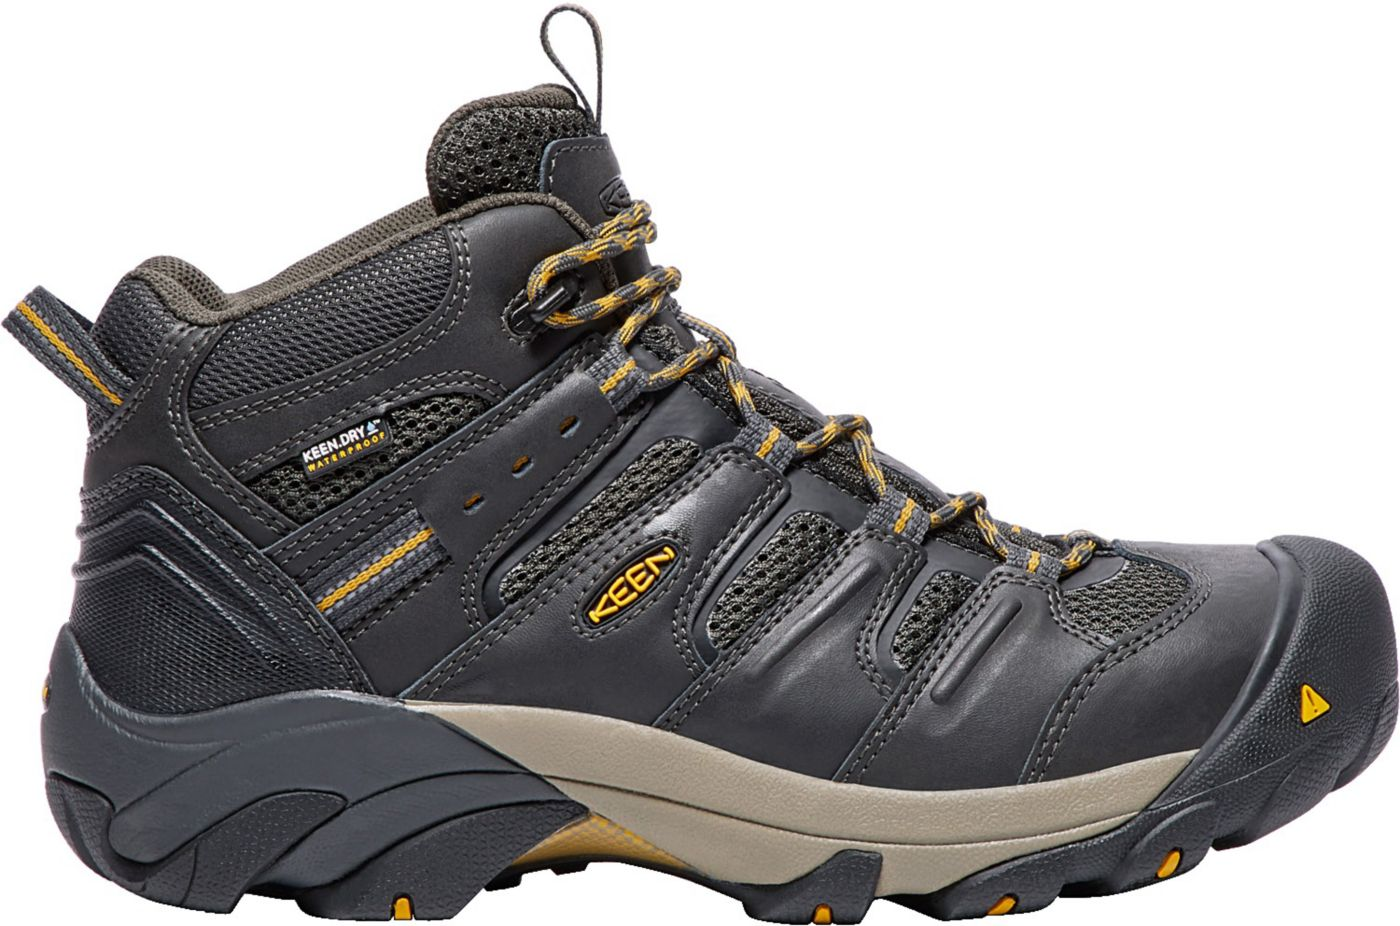 KEEN Men's Lansing Mid Waterproof Steel Toe Work Boots